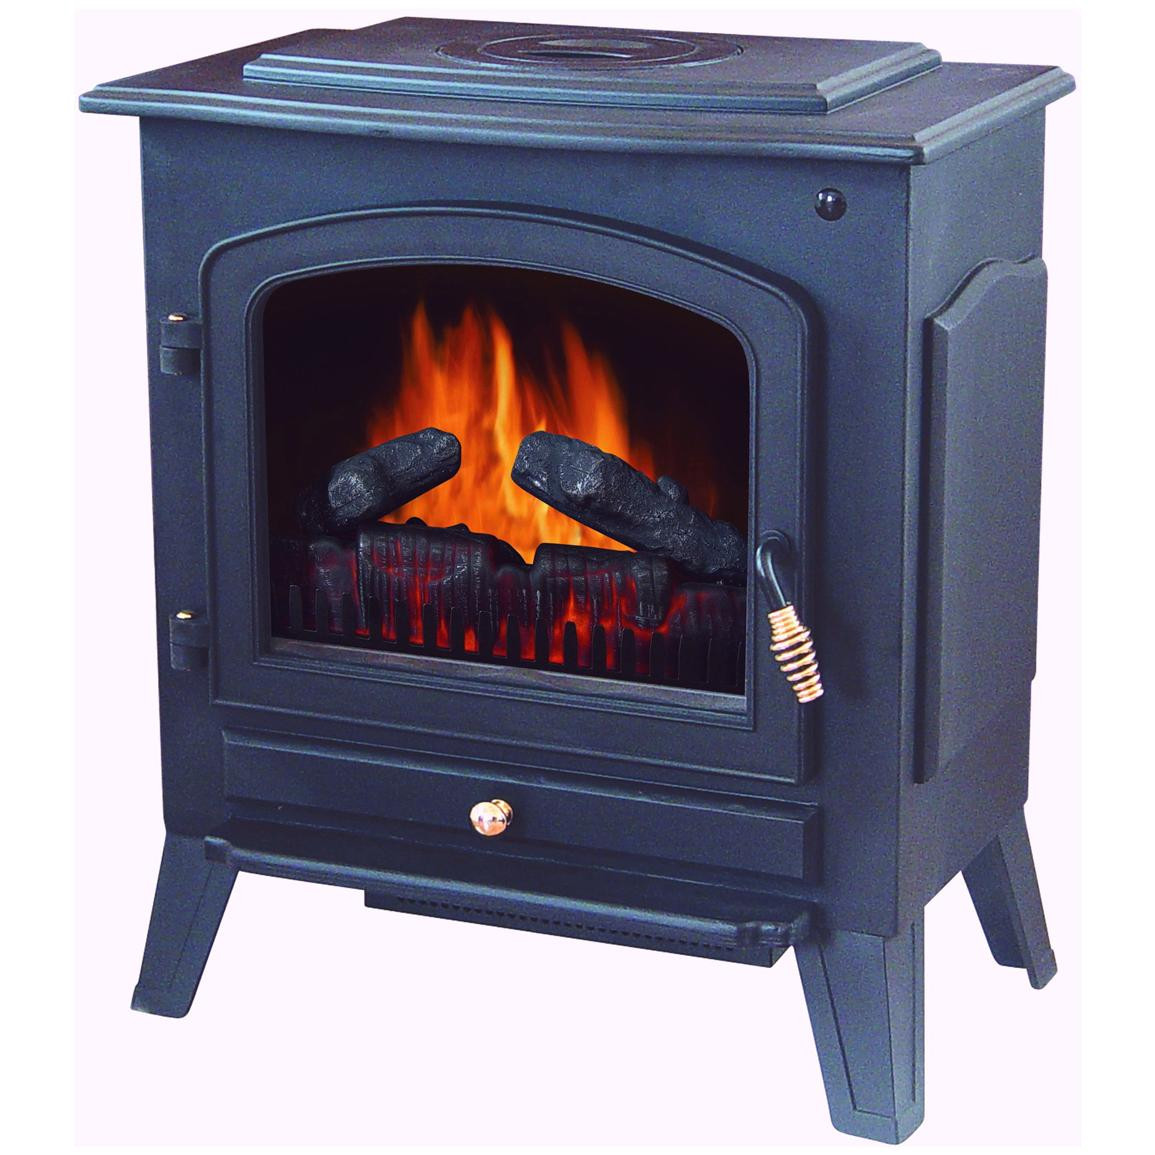 Best ideas about Fireplace Electric Heater . Save or Pin Stonegate Electric Fireplace Heater with Remote Black Now.